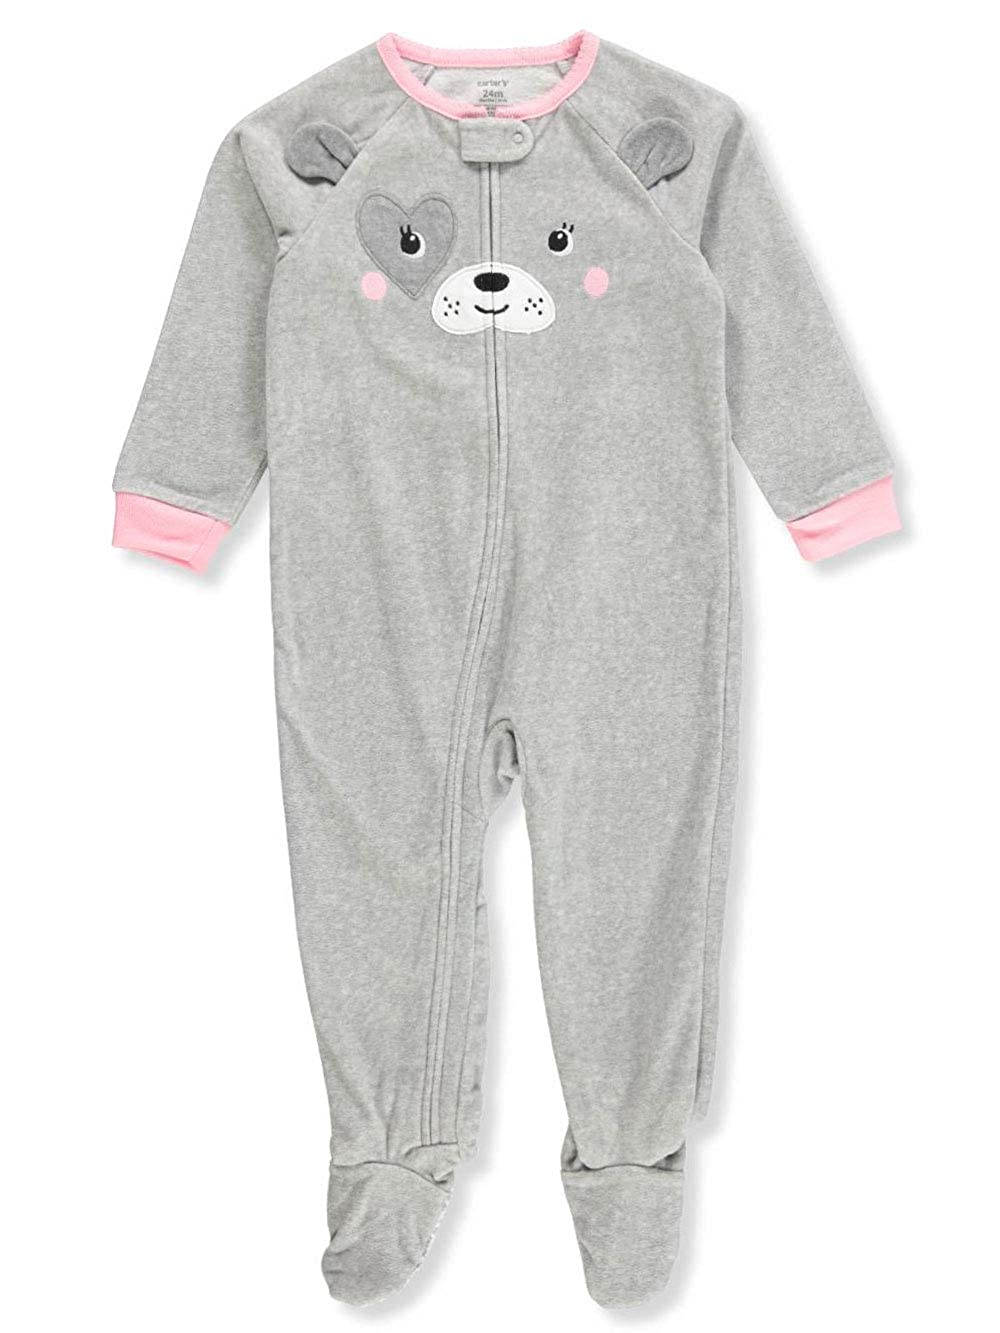 Carters Pajamas Size 24M Toddler Boys 1 Piece Fleece Footed 24 Months Baby